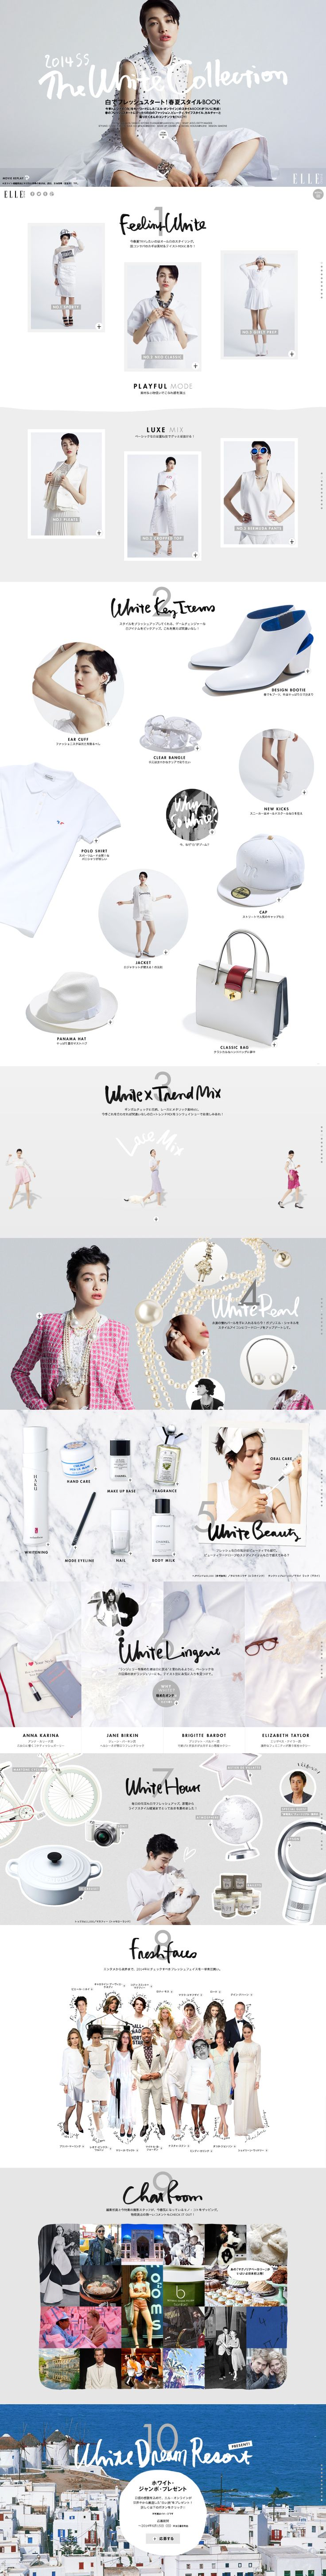 May 2014 http://sp.elle.co.jp/fashion/features/2014sstrend/